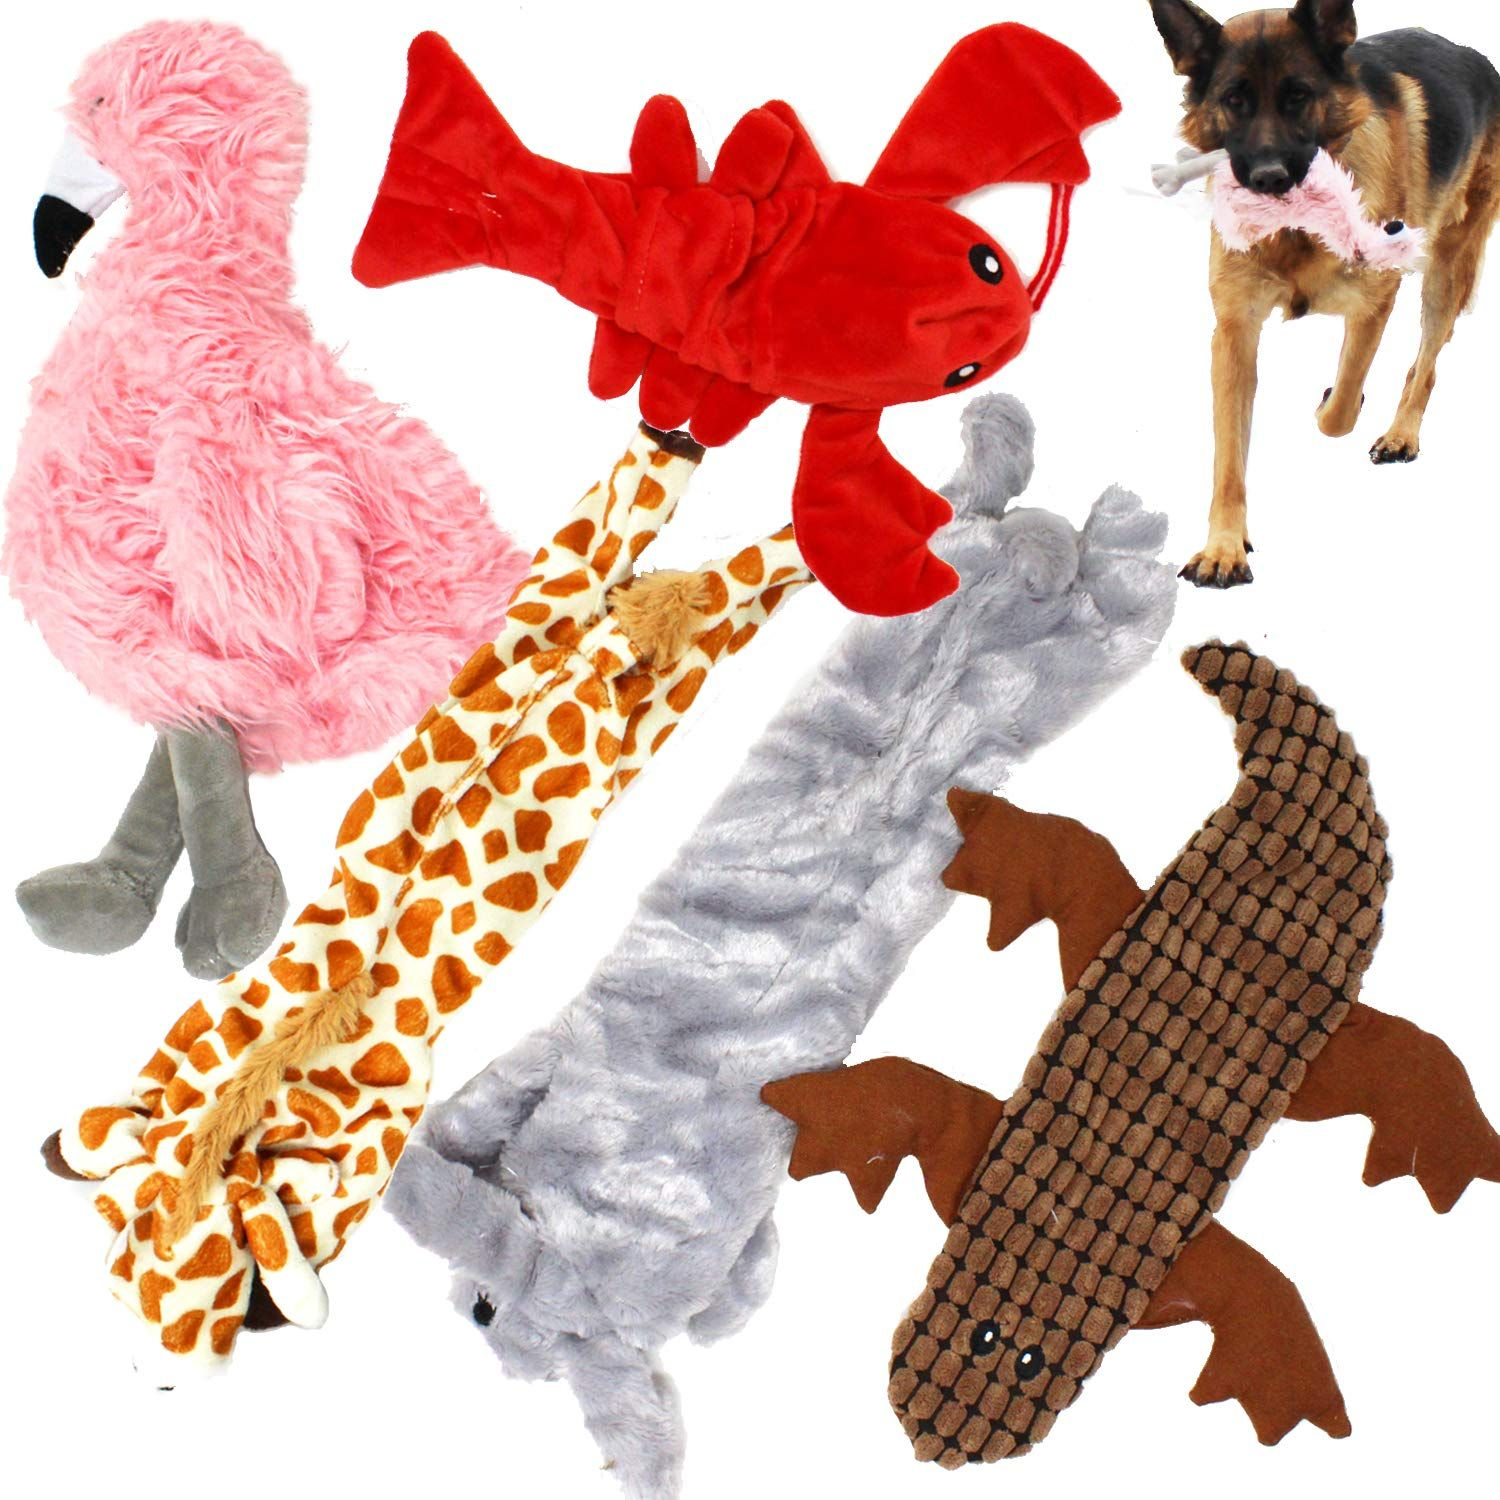 Jalousie 5 Pack Dog Squeaky Toys No Stuffing Dog Plush Toy For